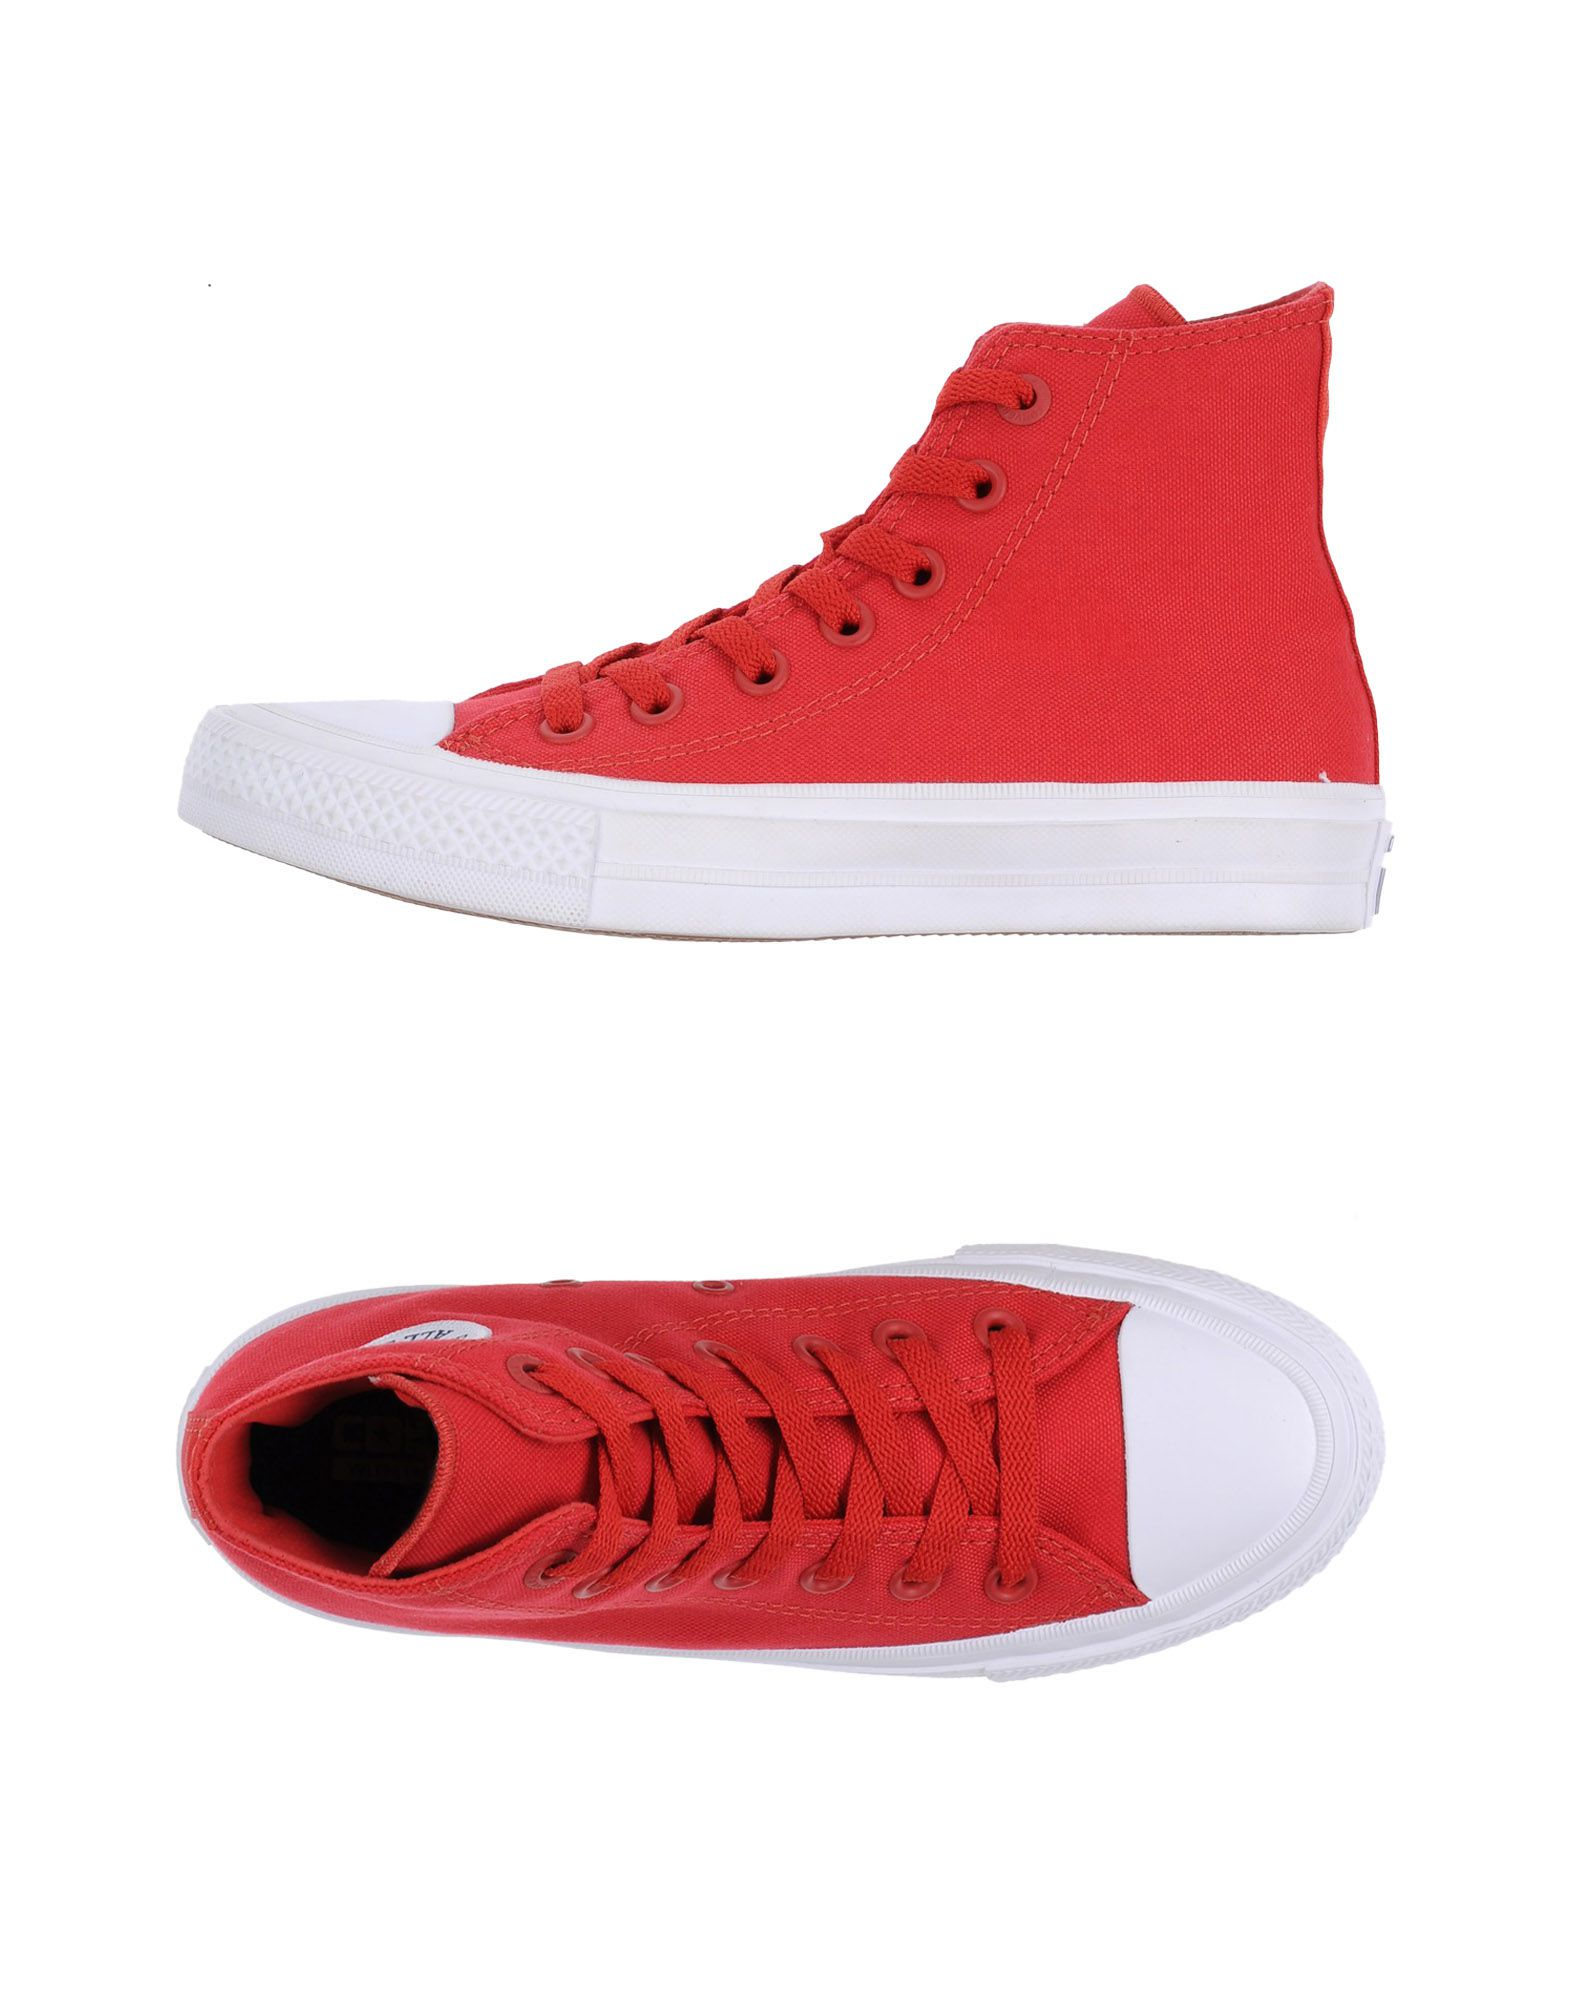 CONVERSE ALL STAR CHUCK TAYLOR II Высокие кеды и кроссовки 5pcs 12v car round rocker dot boat red led light toggle on off switch h02